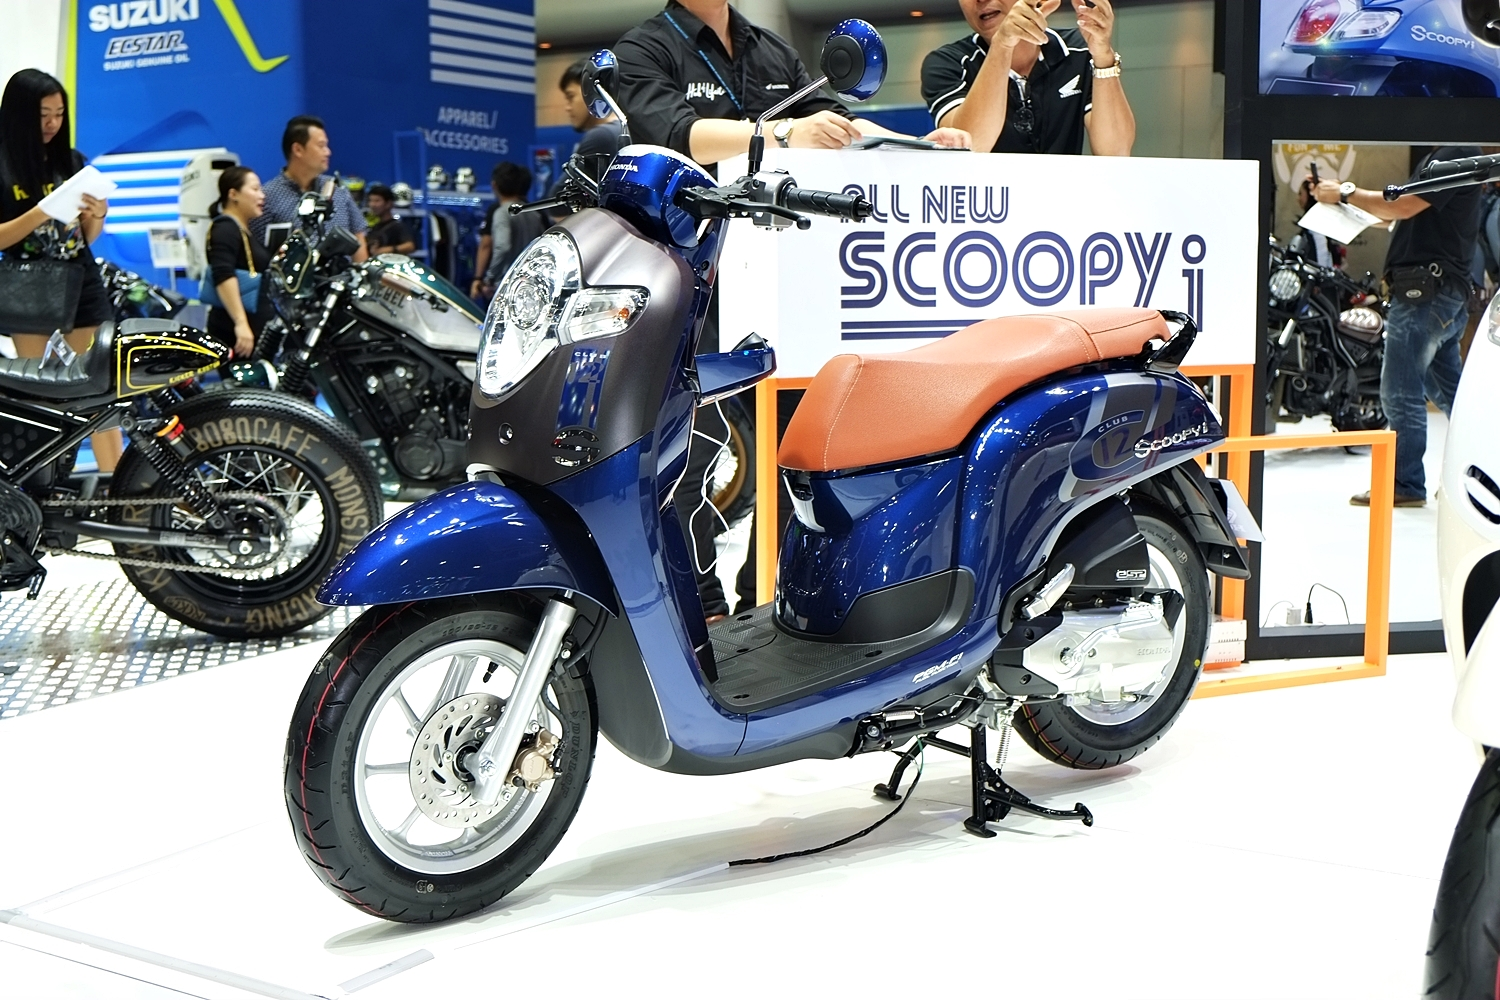 Scoopy i